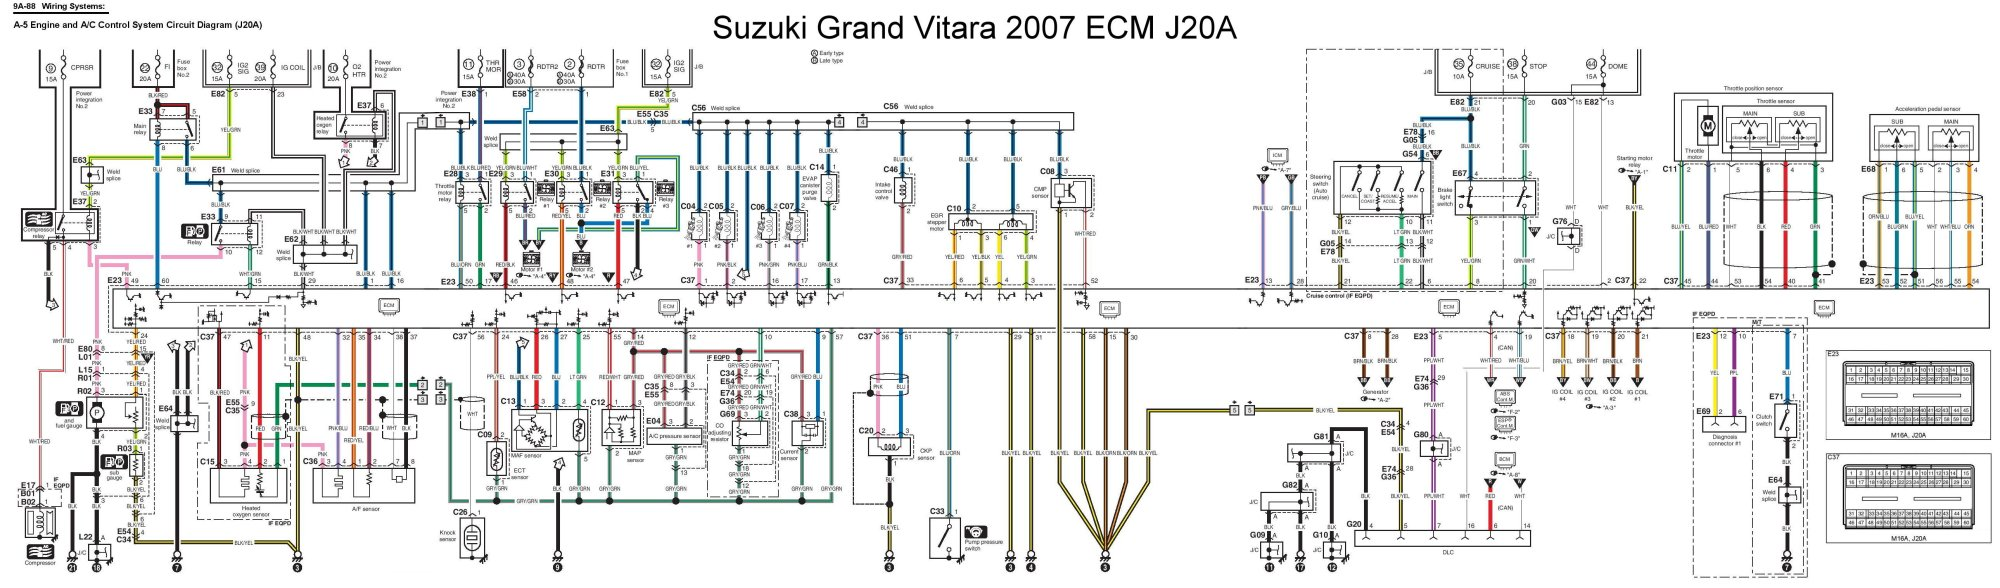 hight resolution of 08 suzuki xl7 fuse box wiring librarywiring diagrams for 2006 suzuki reno saturn aura wiring 2007